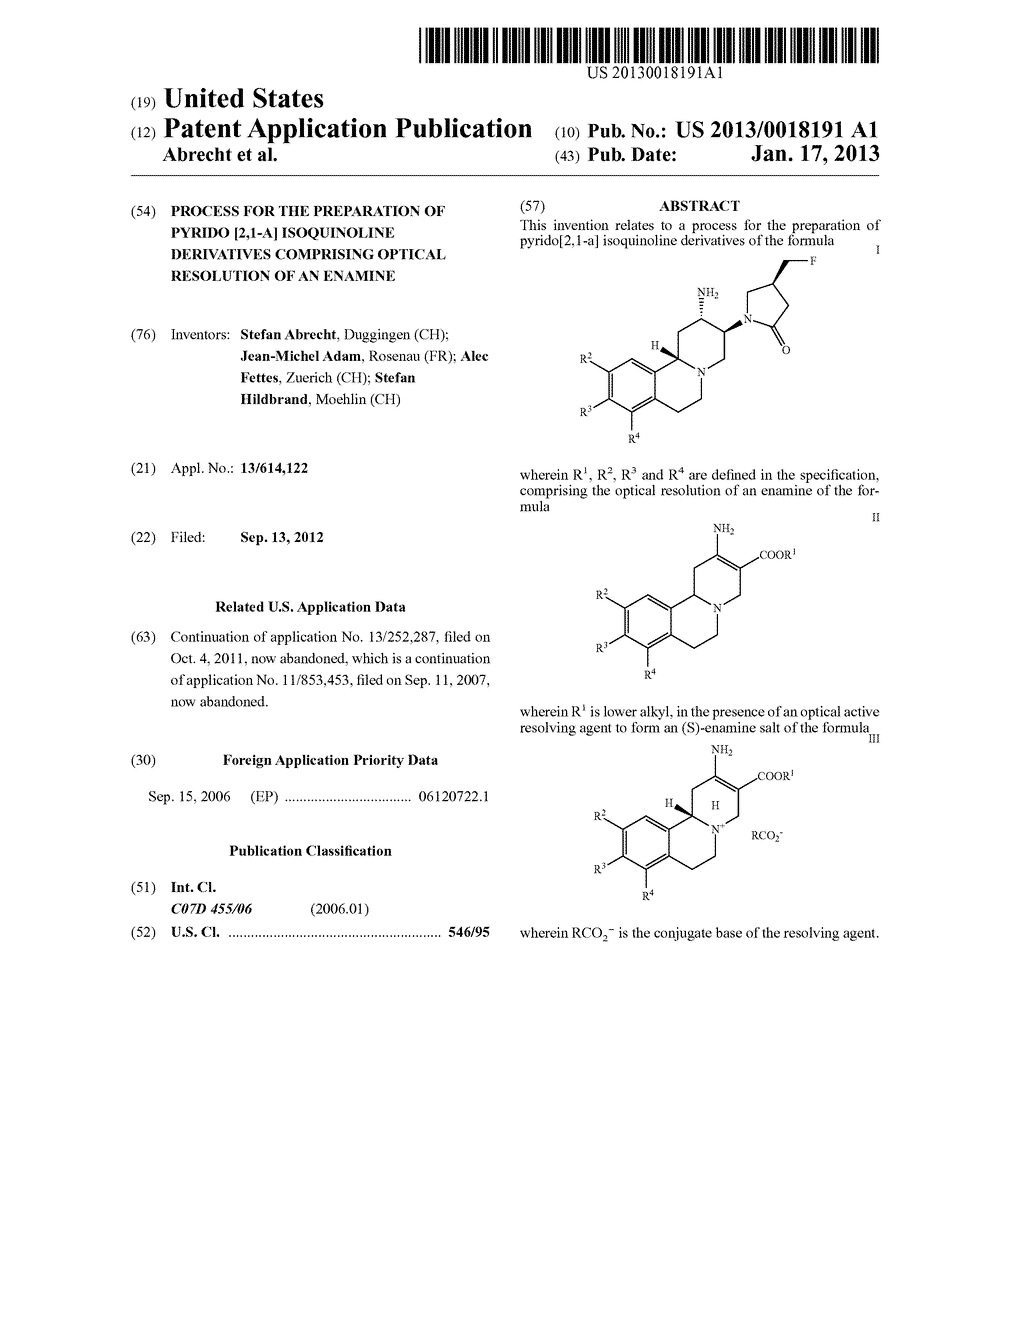 PROCESS FOR THE PREPARATION OF PYRIDO [2,1-A] ISOQUINOLINE DERIVATIVES     COMPRISING OPTICAL RESOLUTION OF AN ENAMINE - diagram, schematic, and image 01